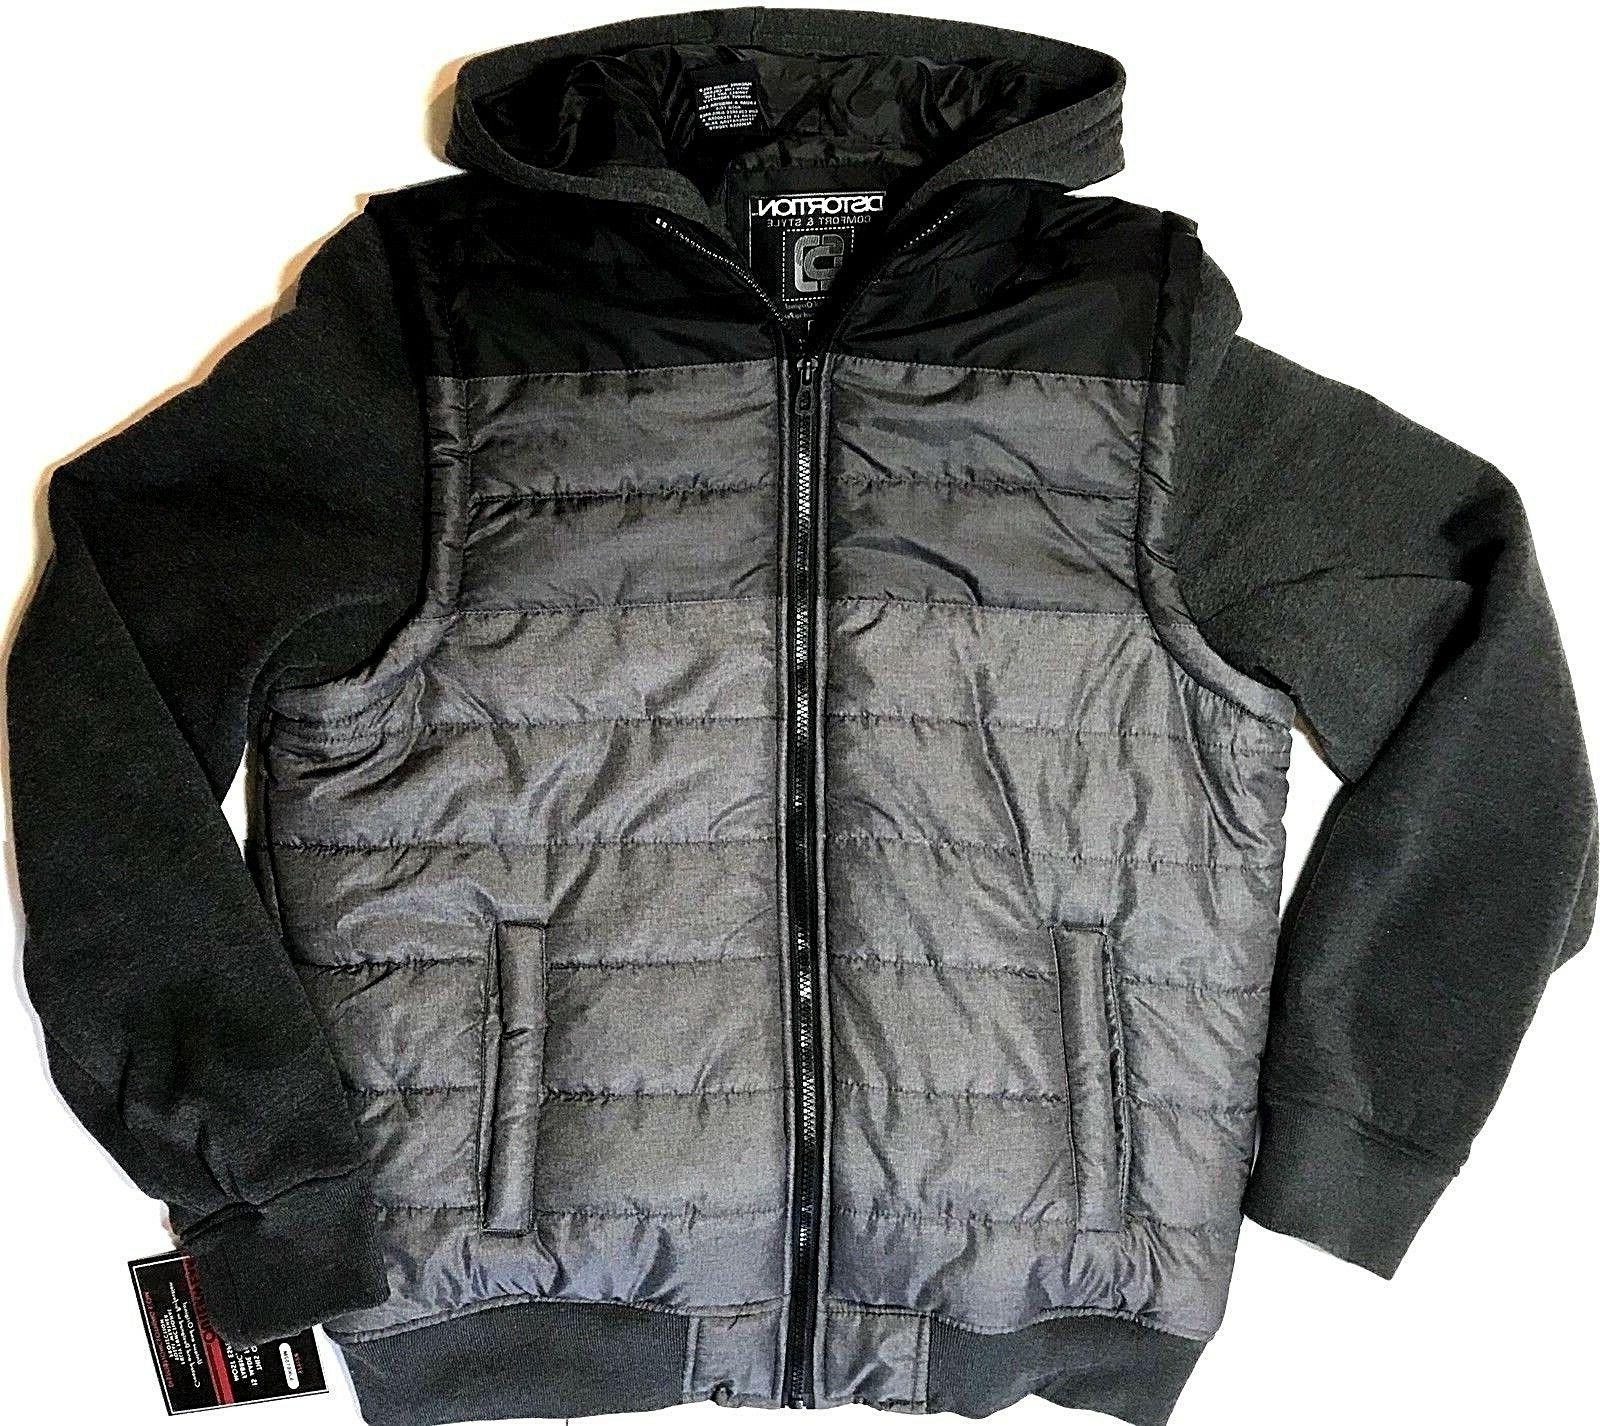 new outerwear puffy vest hoodie jacket coat